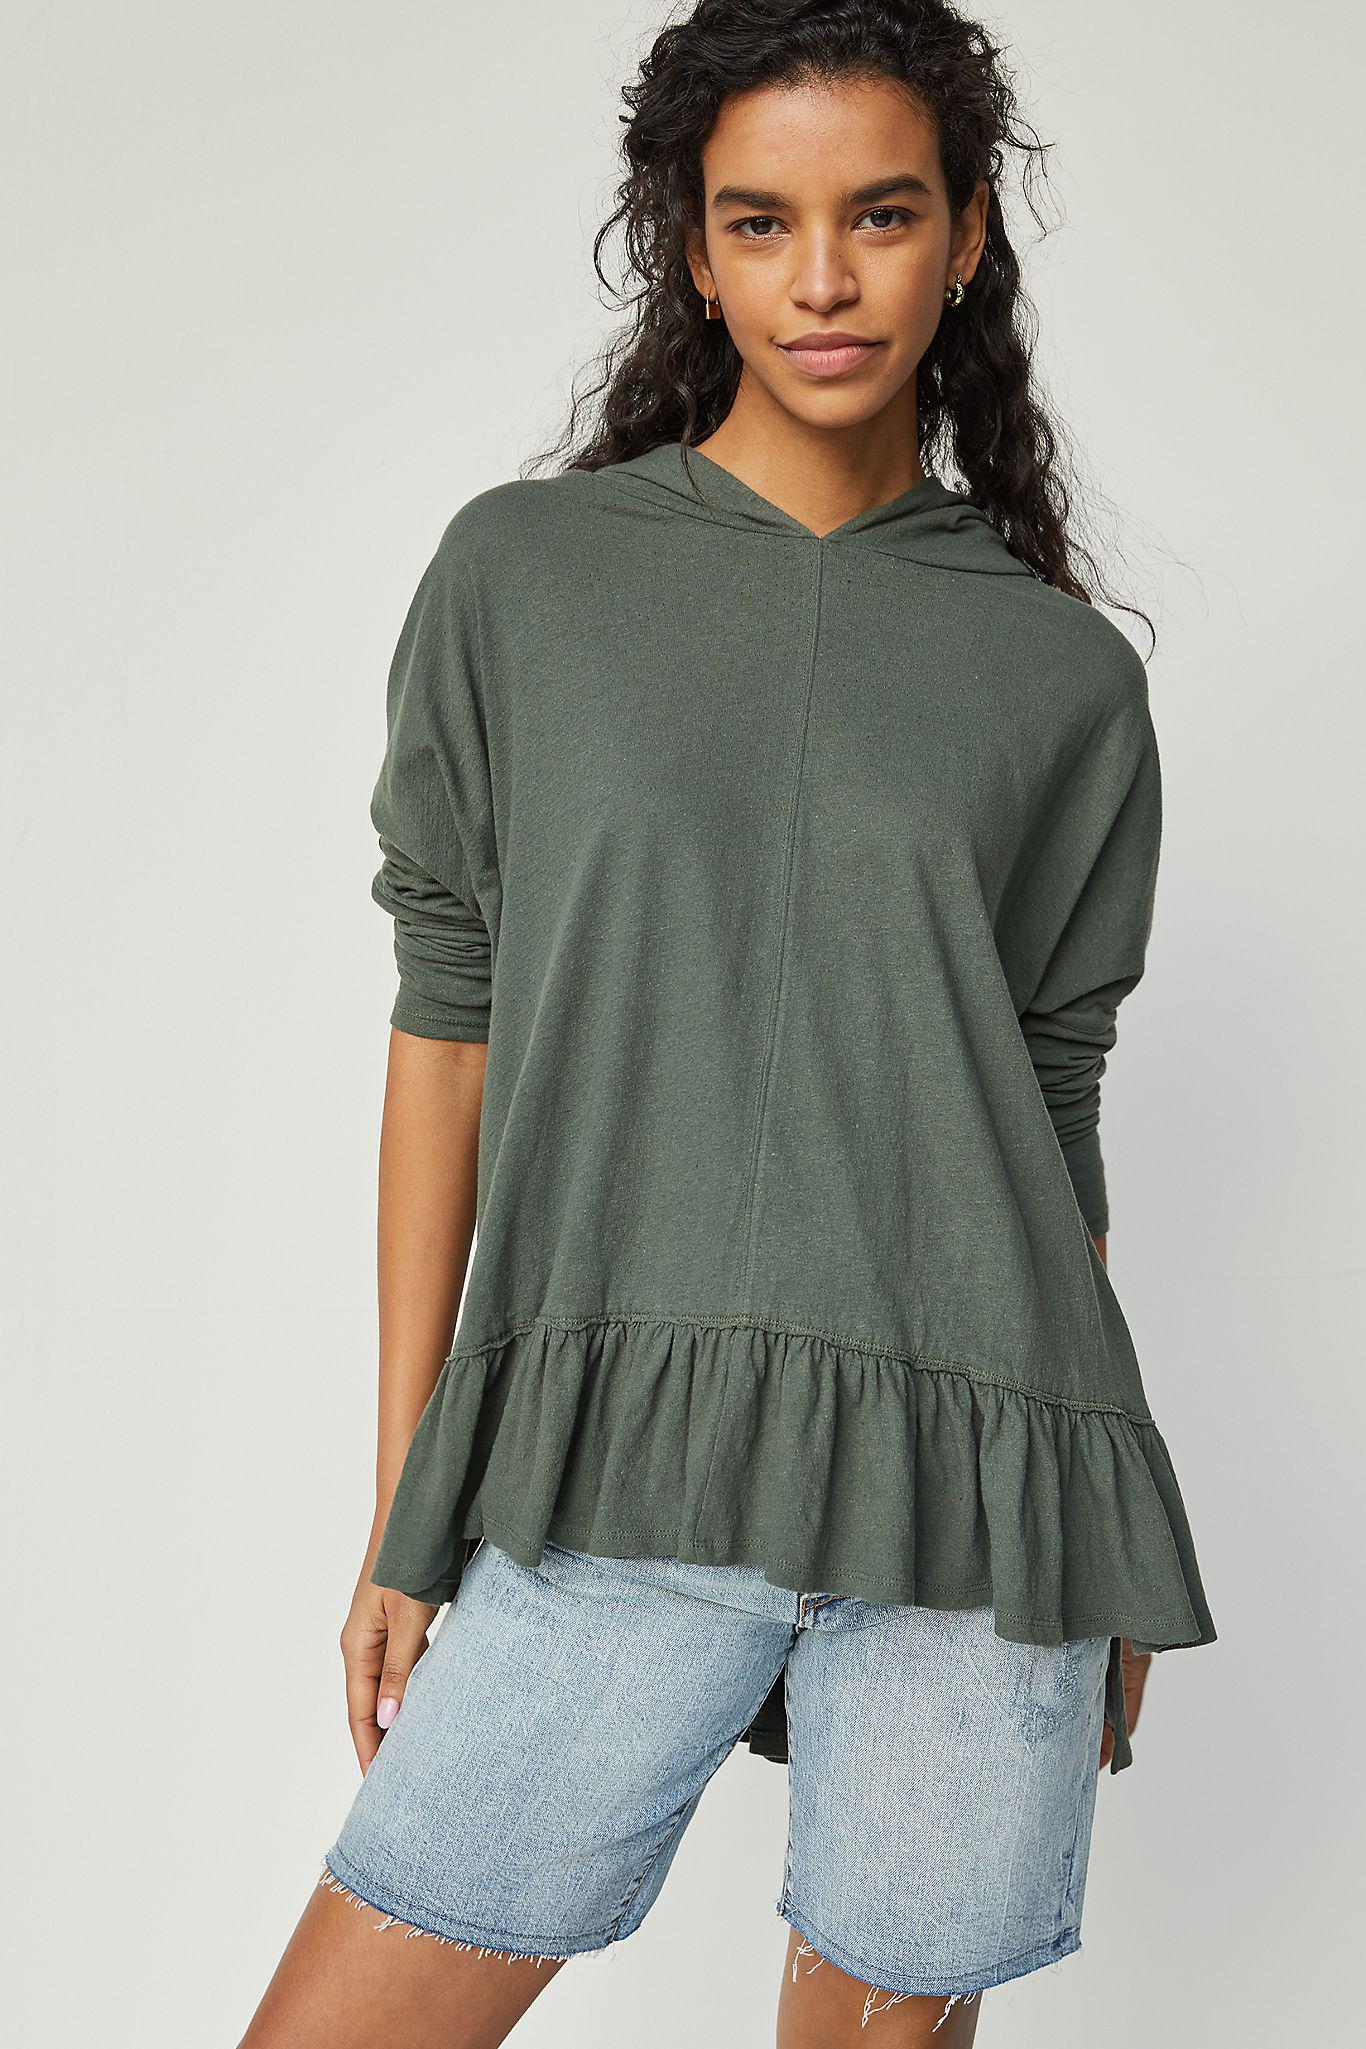 Corinthia Hooded Pullover